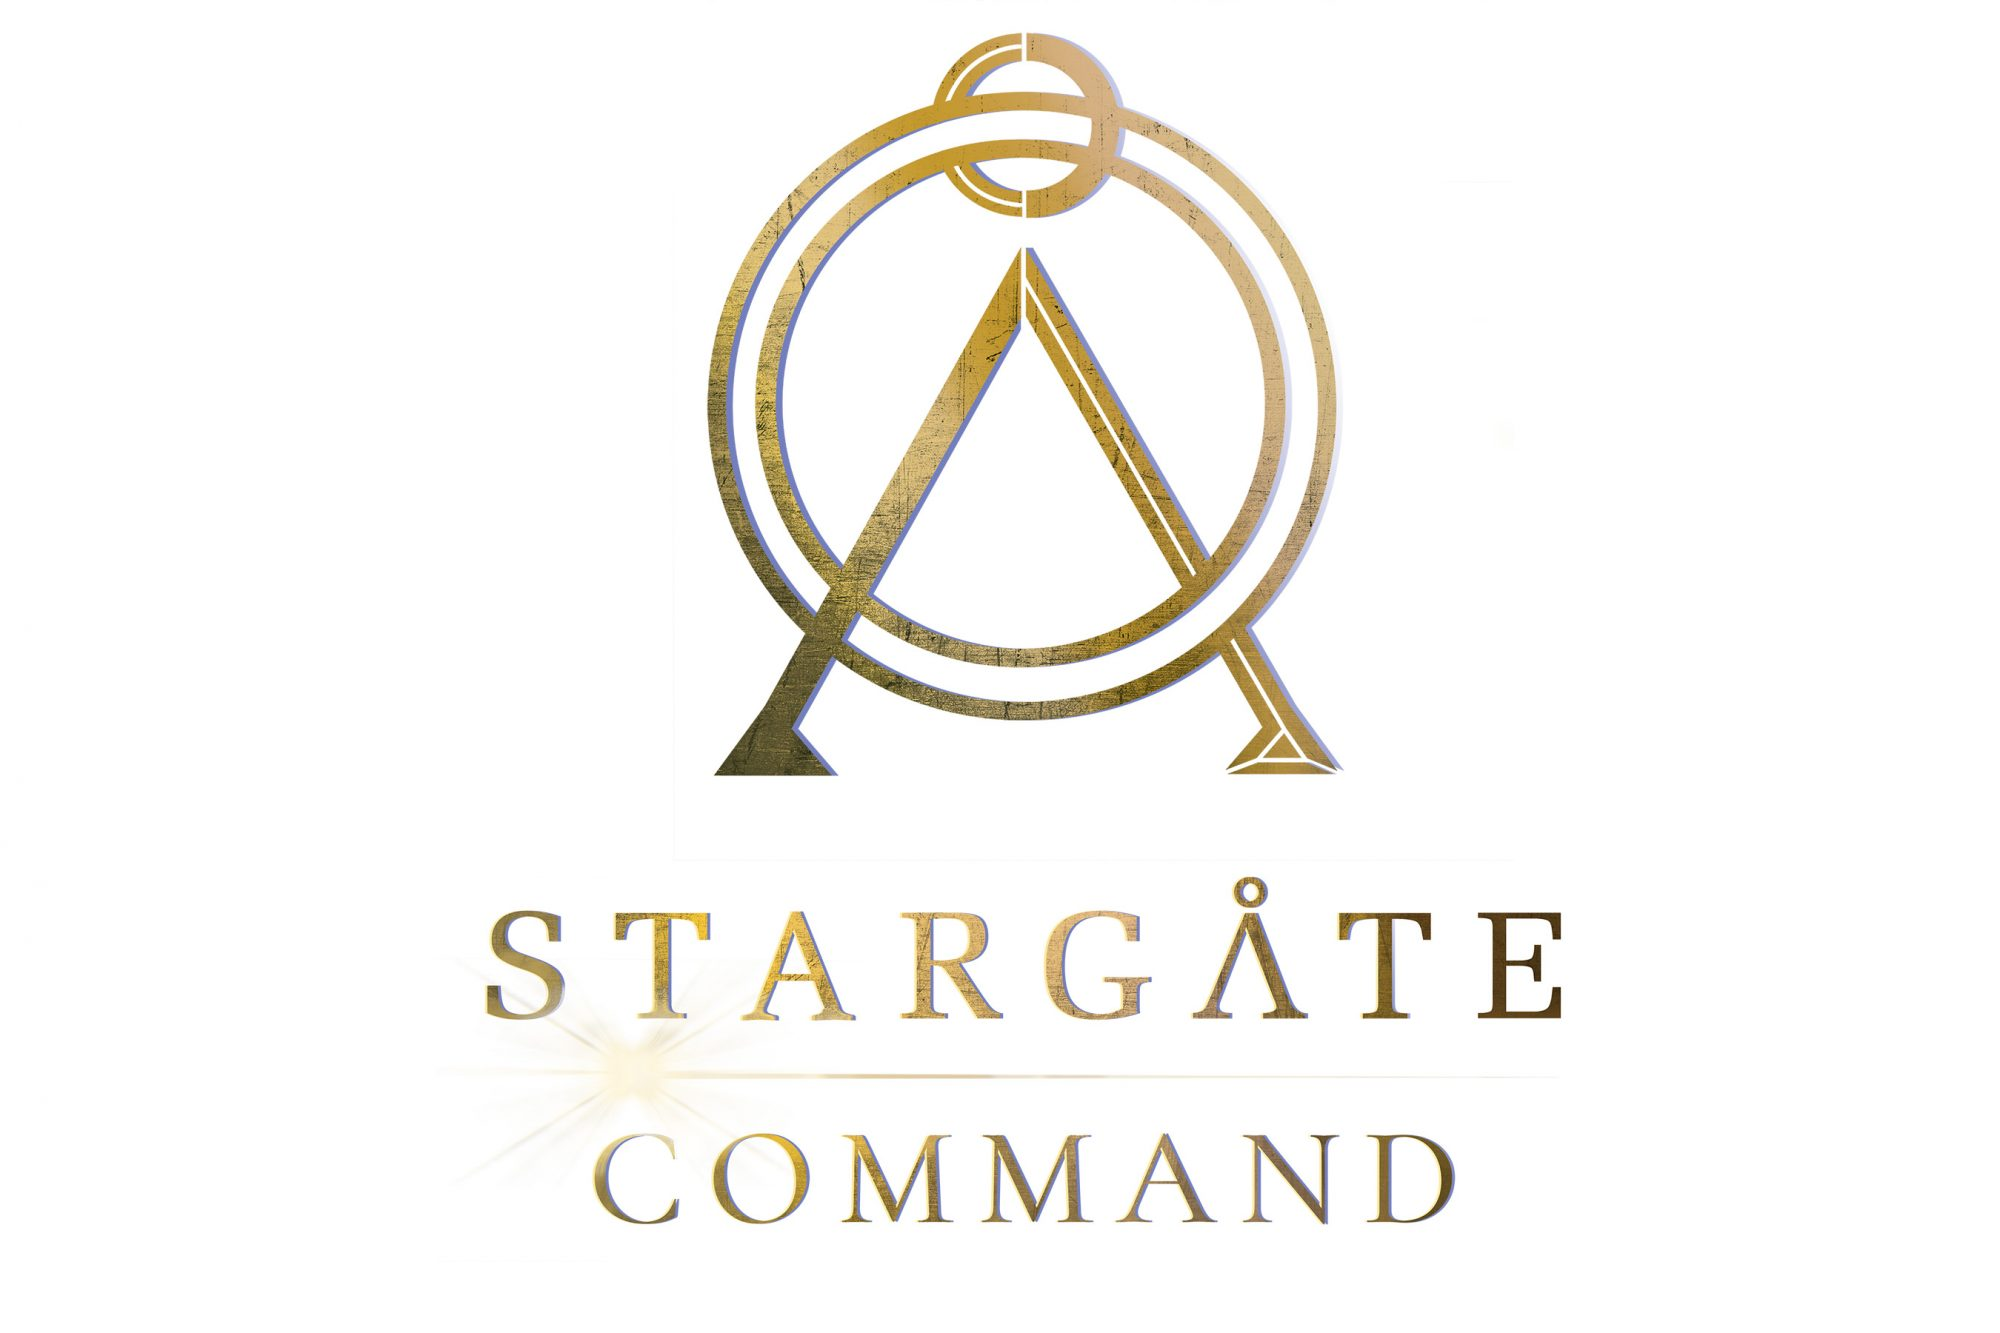 Stargate-Command_gold_stacked